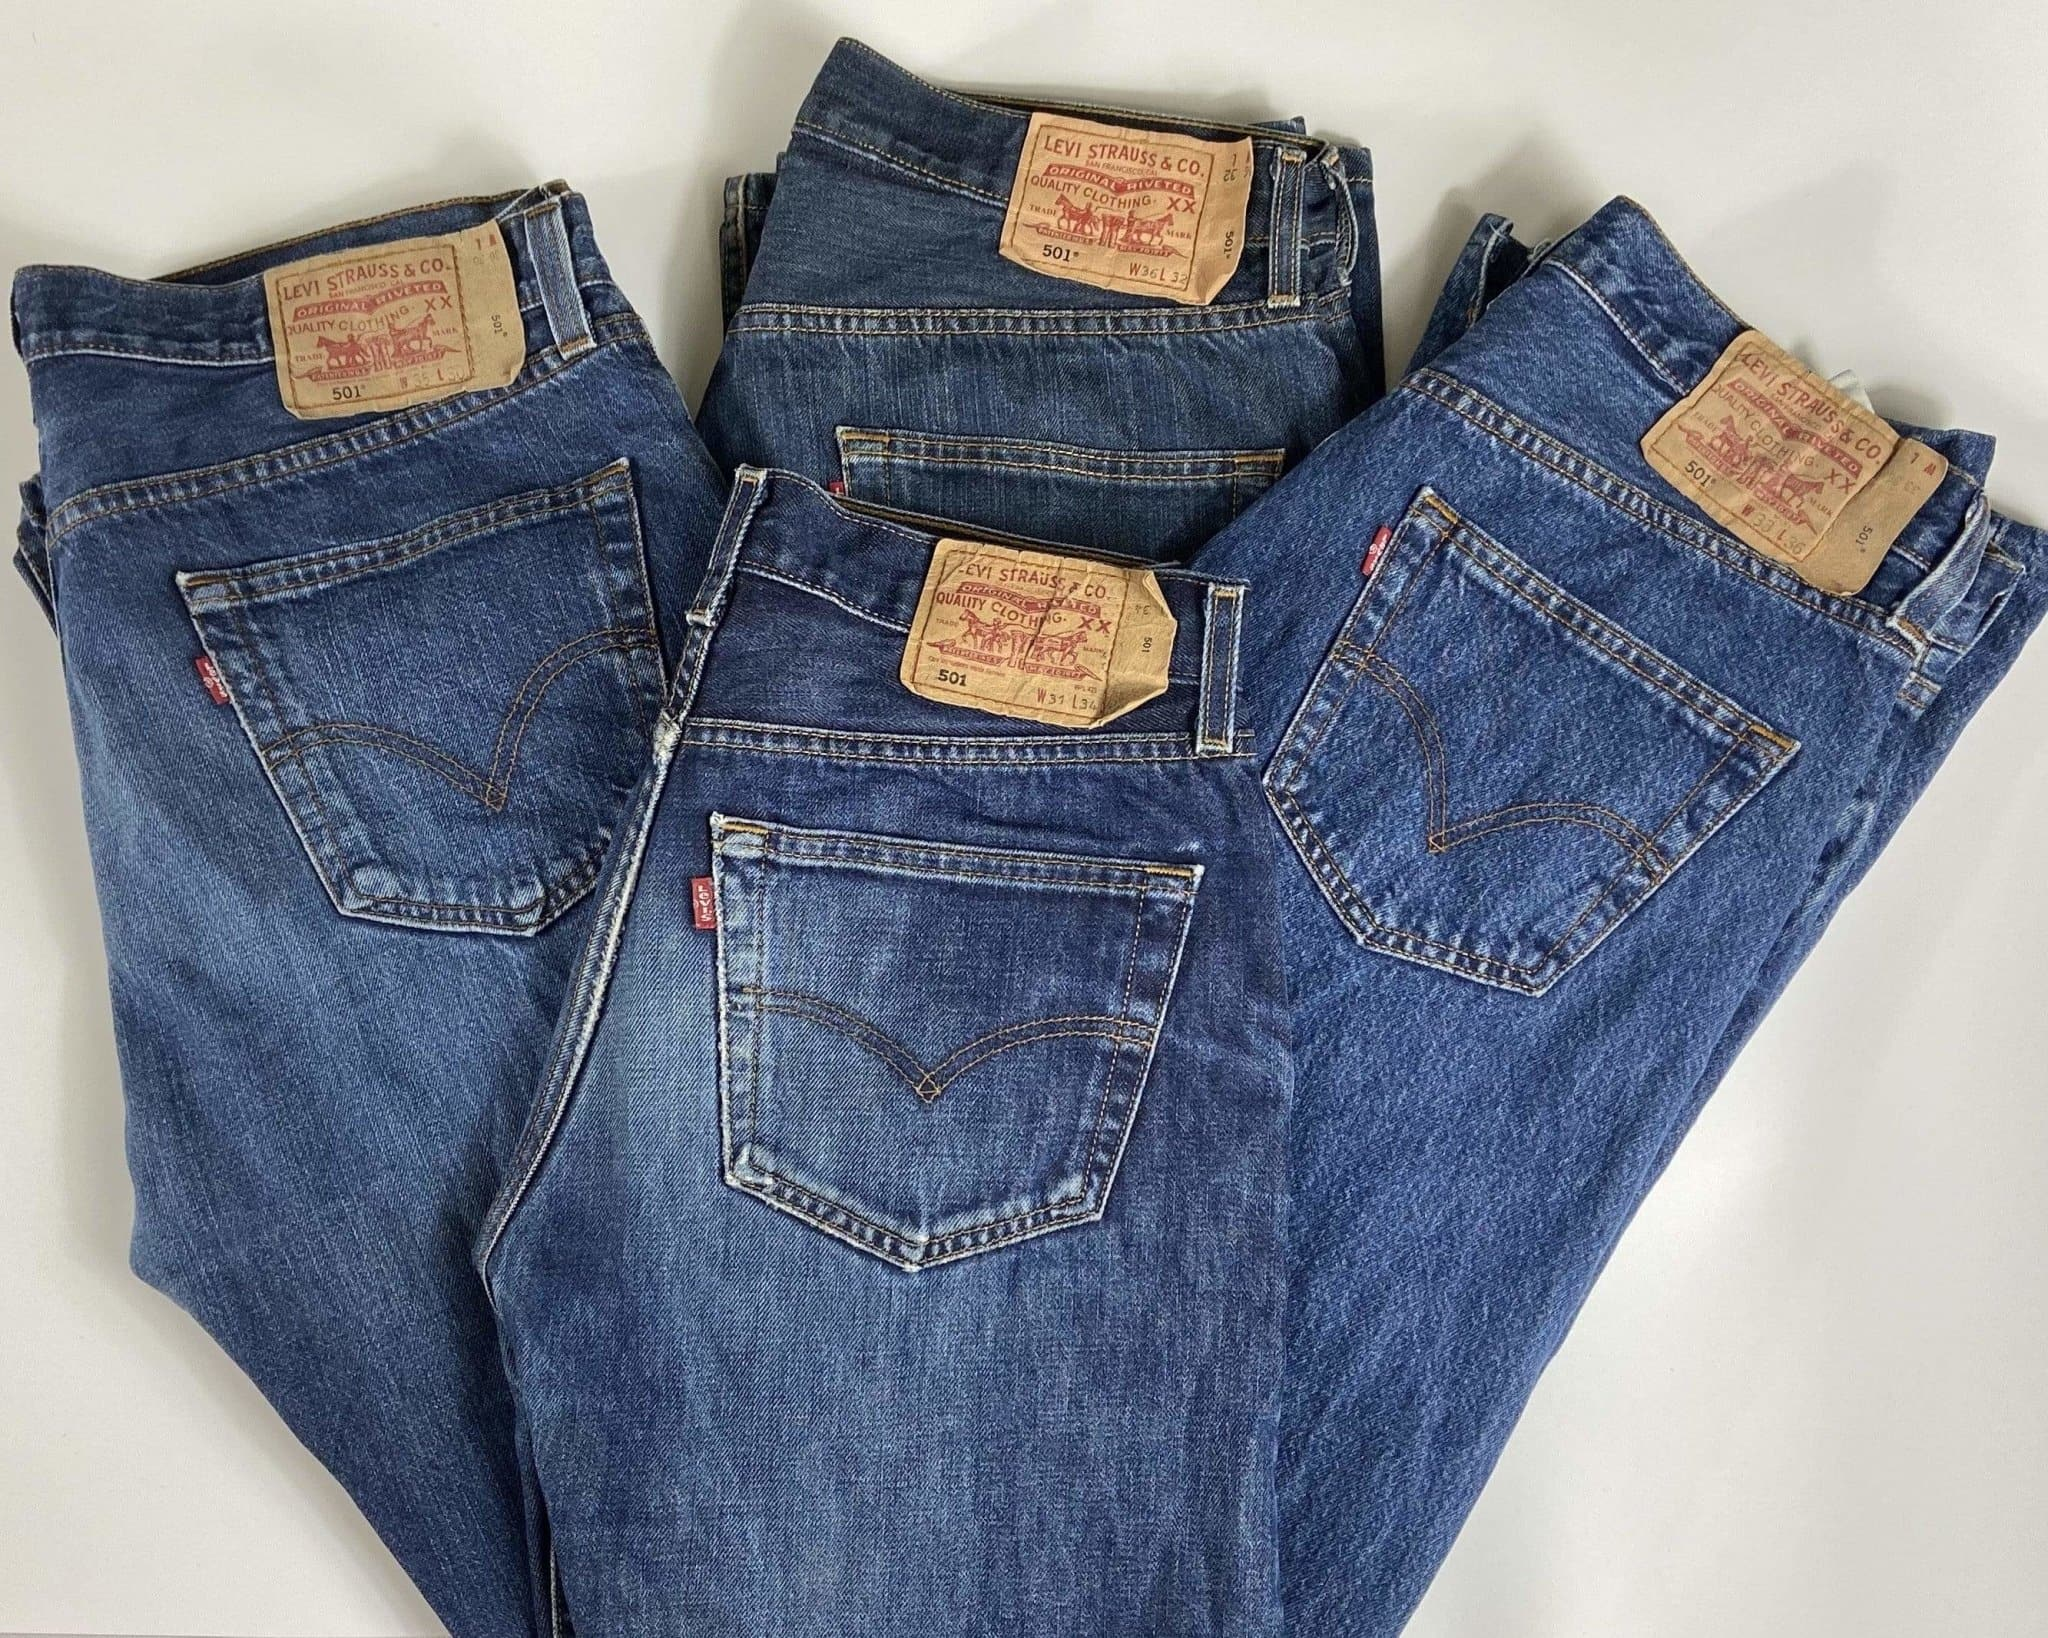 Vintage Levi's Classic 501 Jeans W34 L32 (DHLB3) - Discounted Deals UK